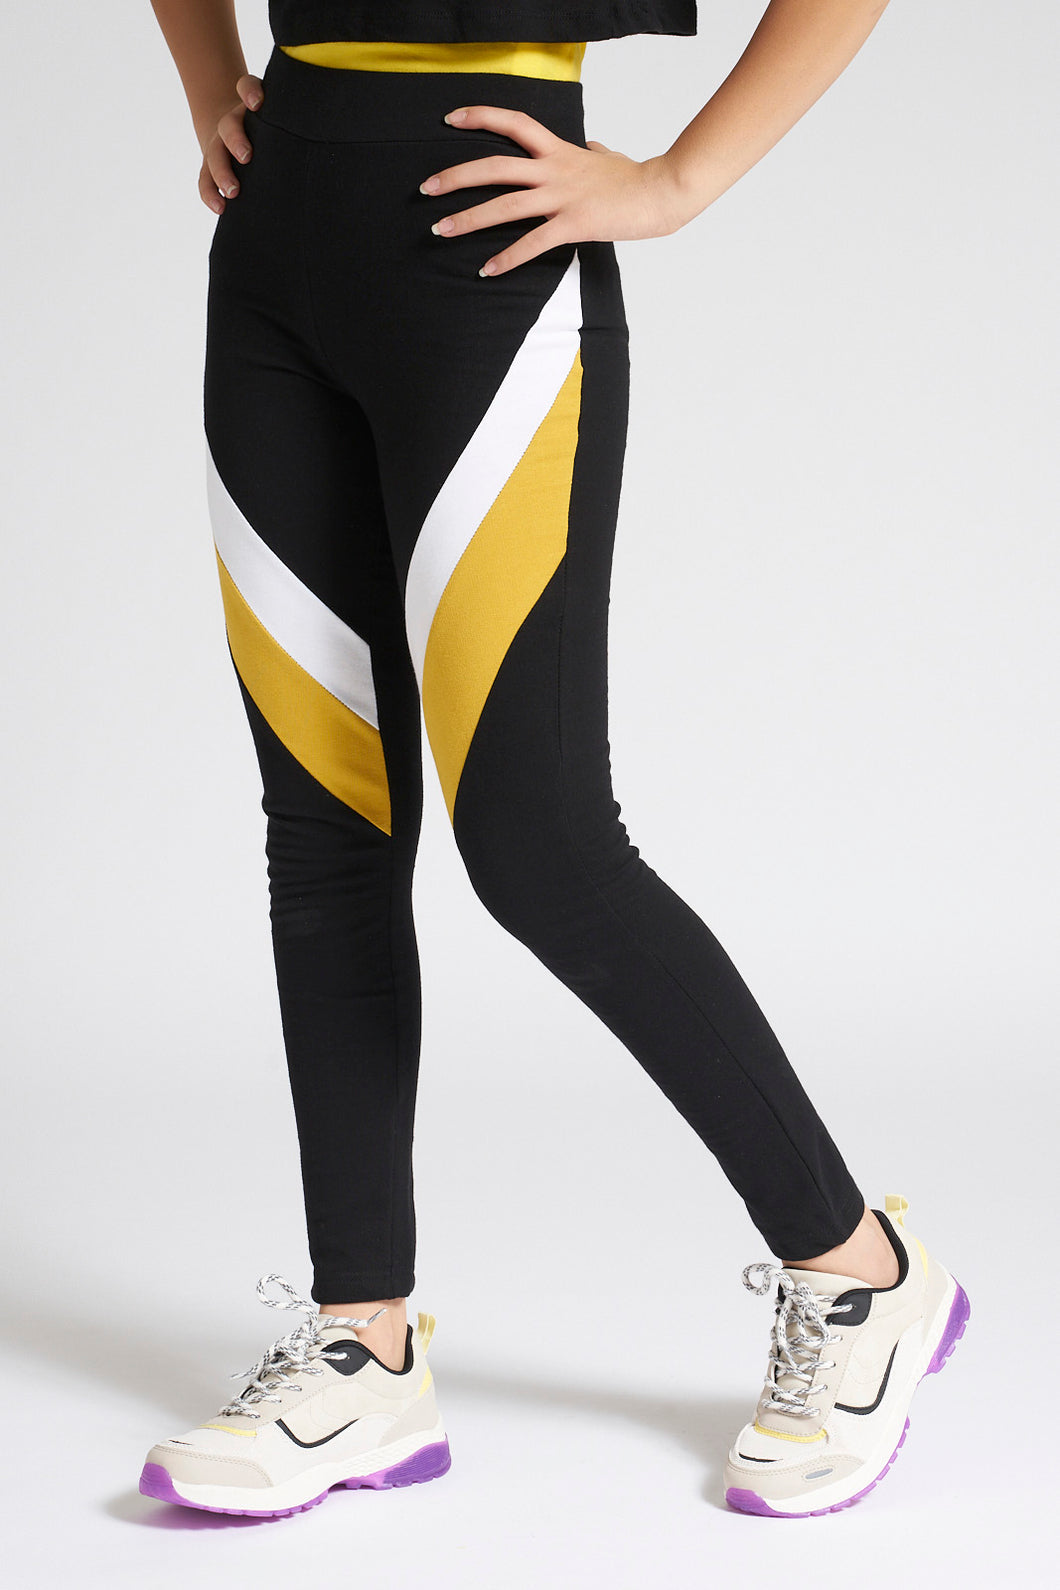 Black/Yellow Colourblocking Track Pant